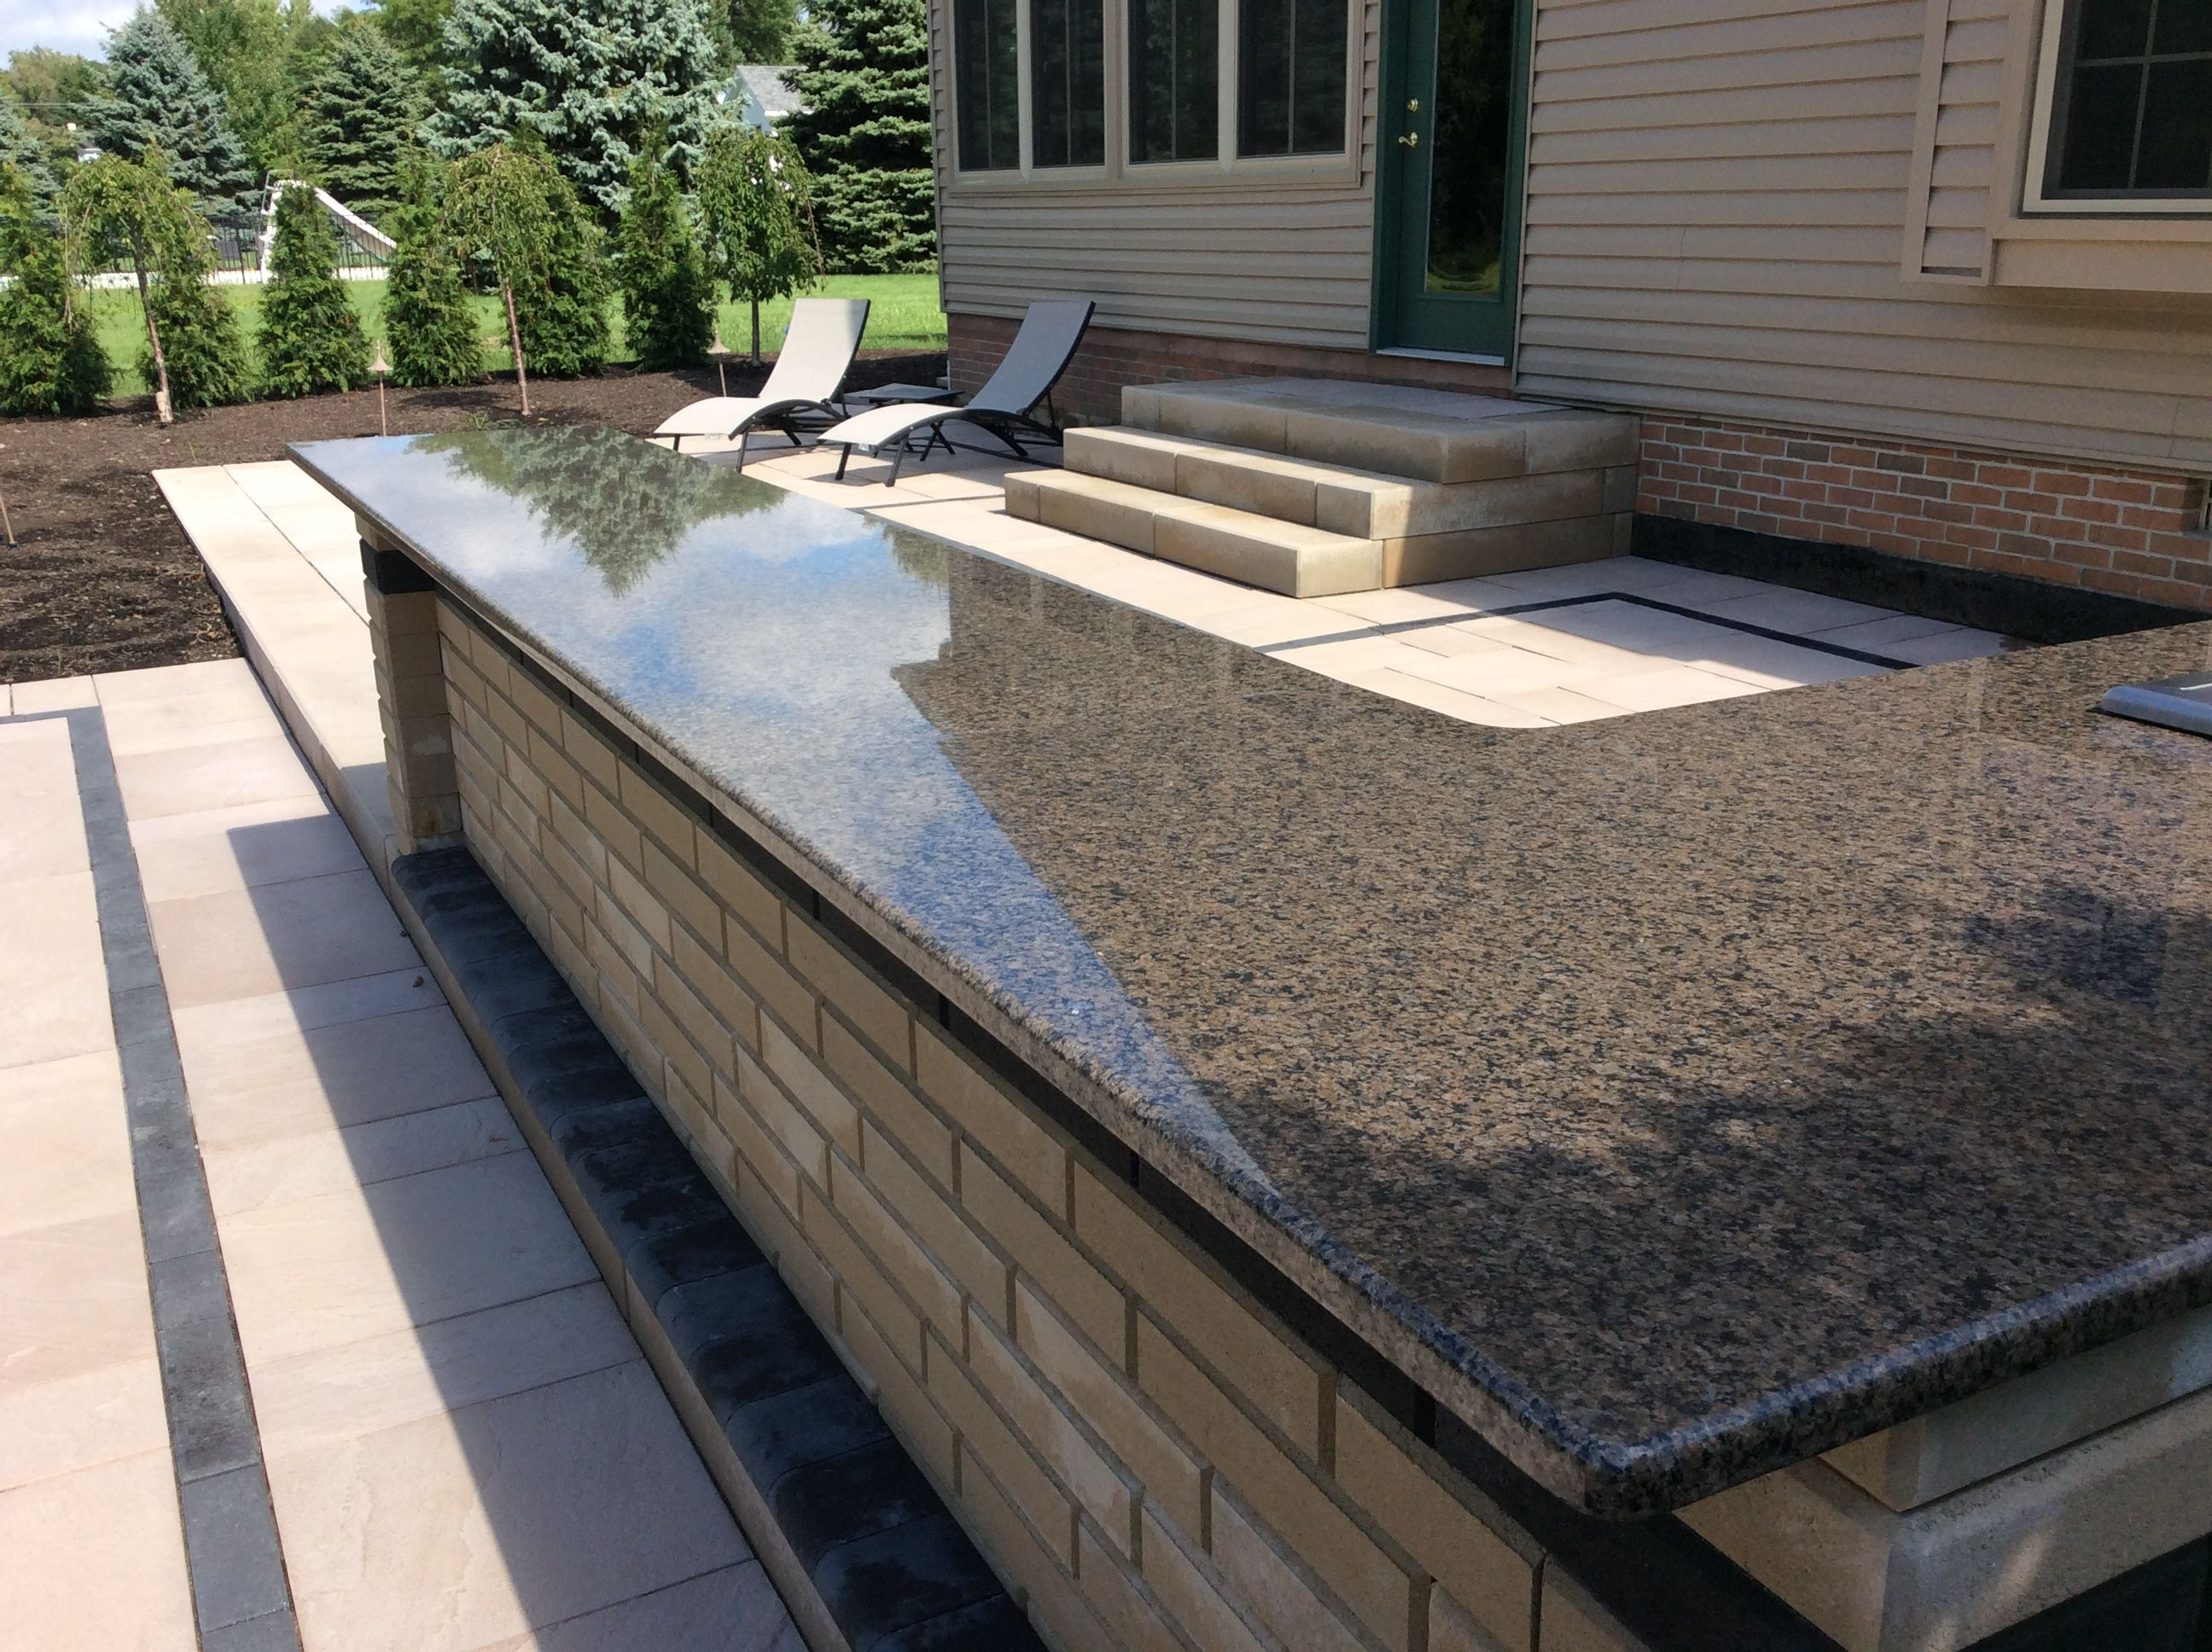 1 100sf Two Tiered Paver Patio With 10ft Long Bar Drop In Cooler Rectangular Fire Pit And Large L Shaped Sitting Wall Wi Patio Patio Bar Landscaping Blocks